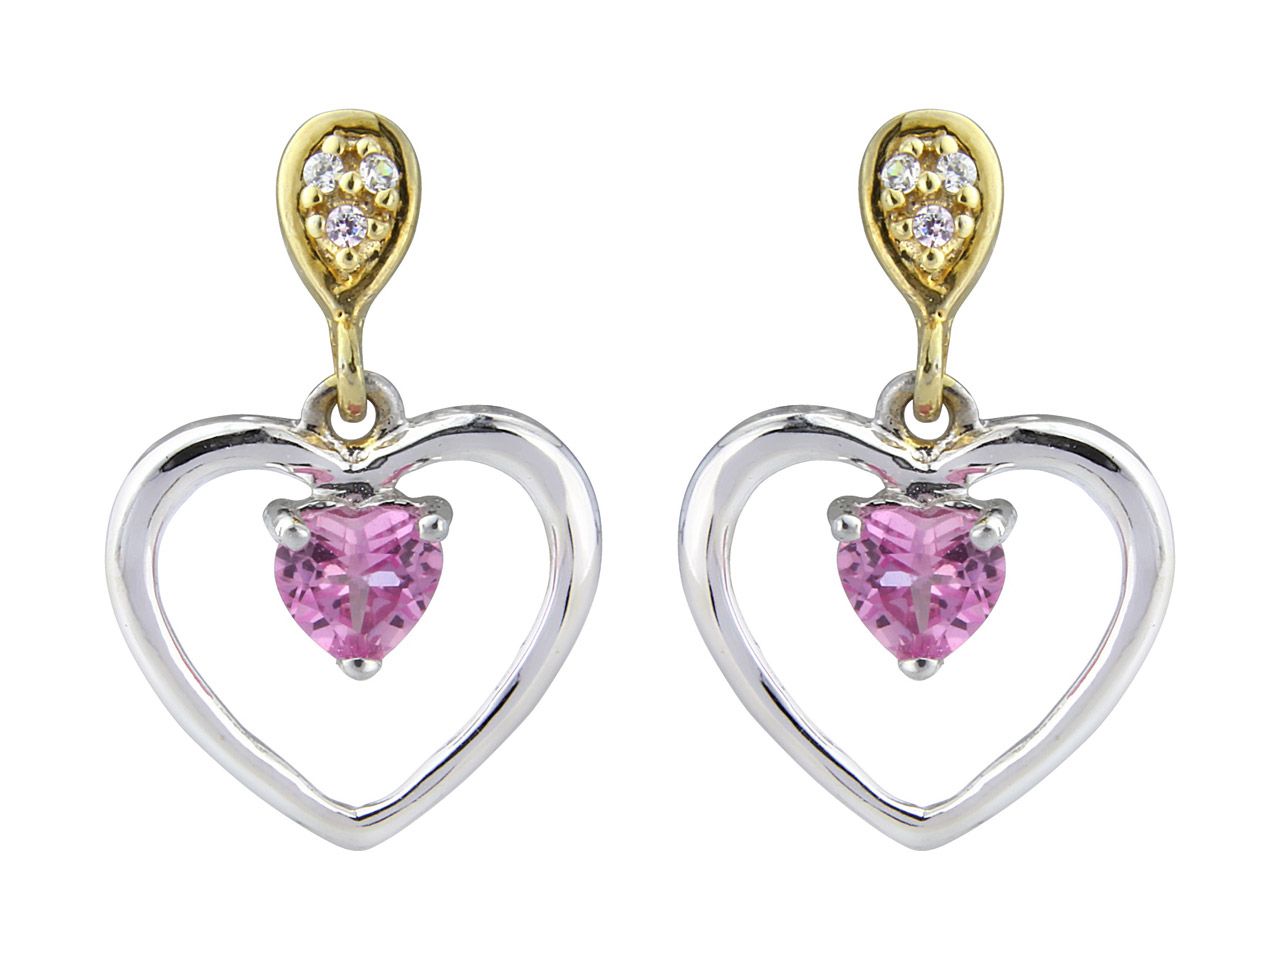 Sterling Silver Earrings Heart     Dropper Set With Created Pink      Sapphire And Cz's